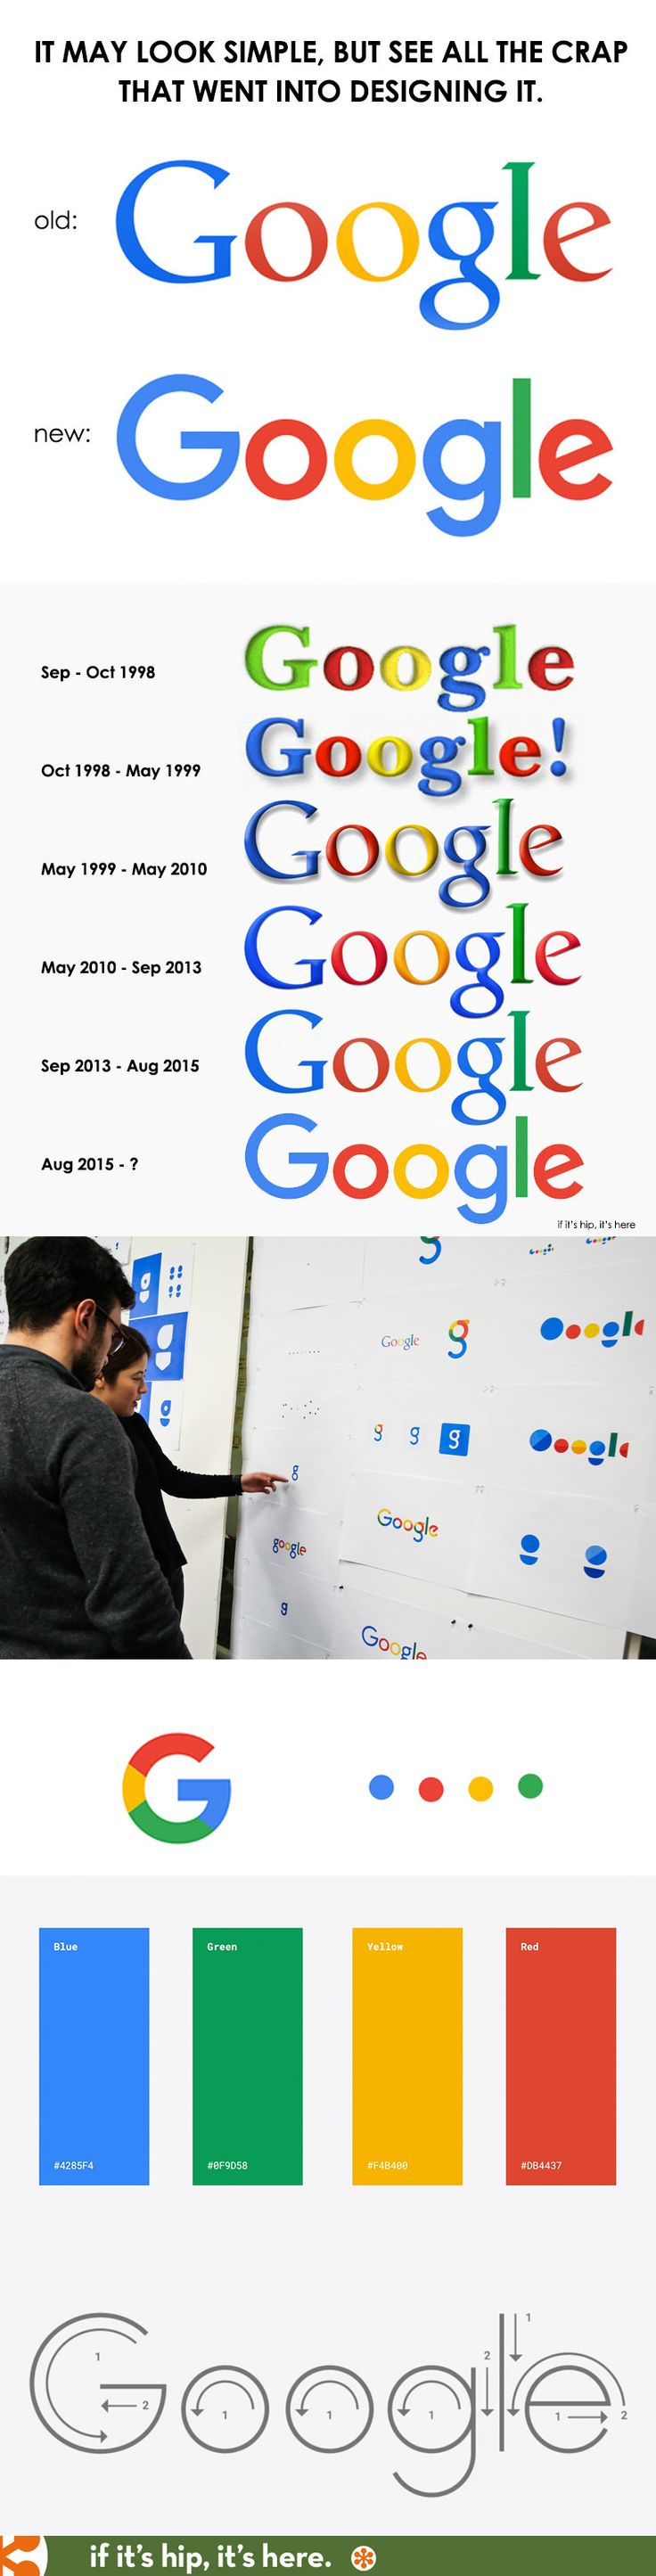 Learn what went into the design of google's 6th logo.